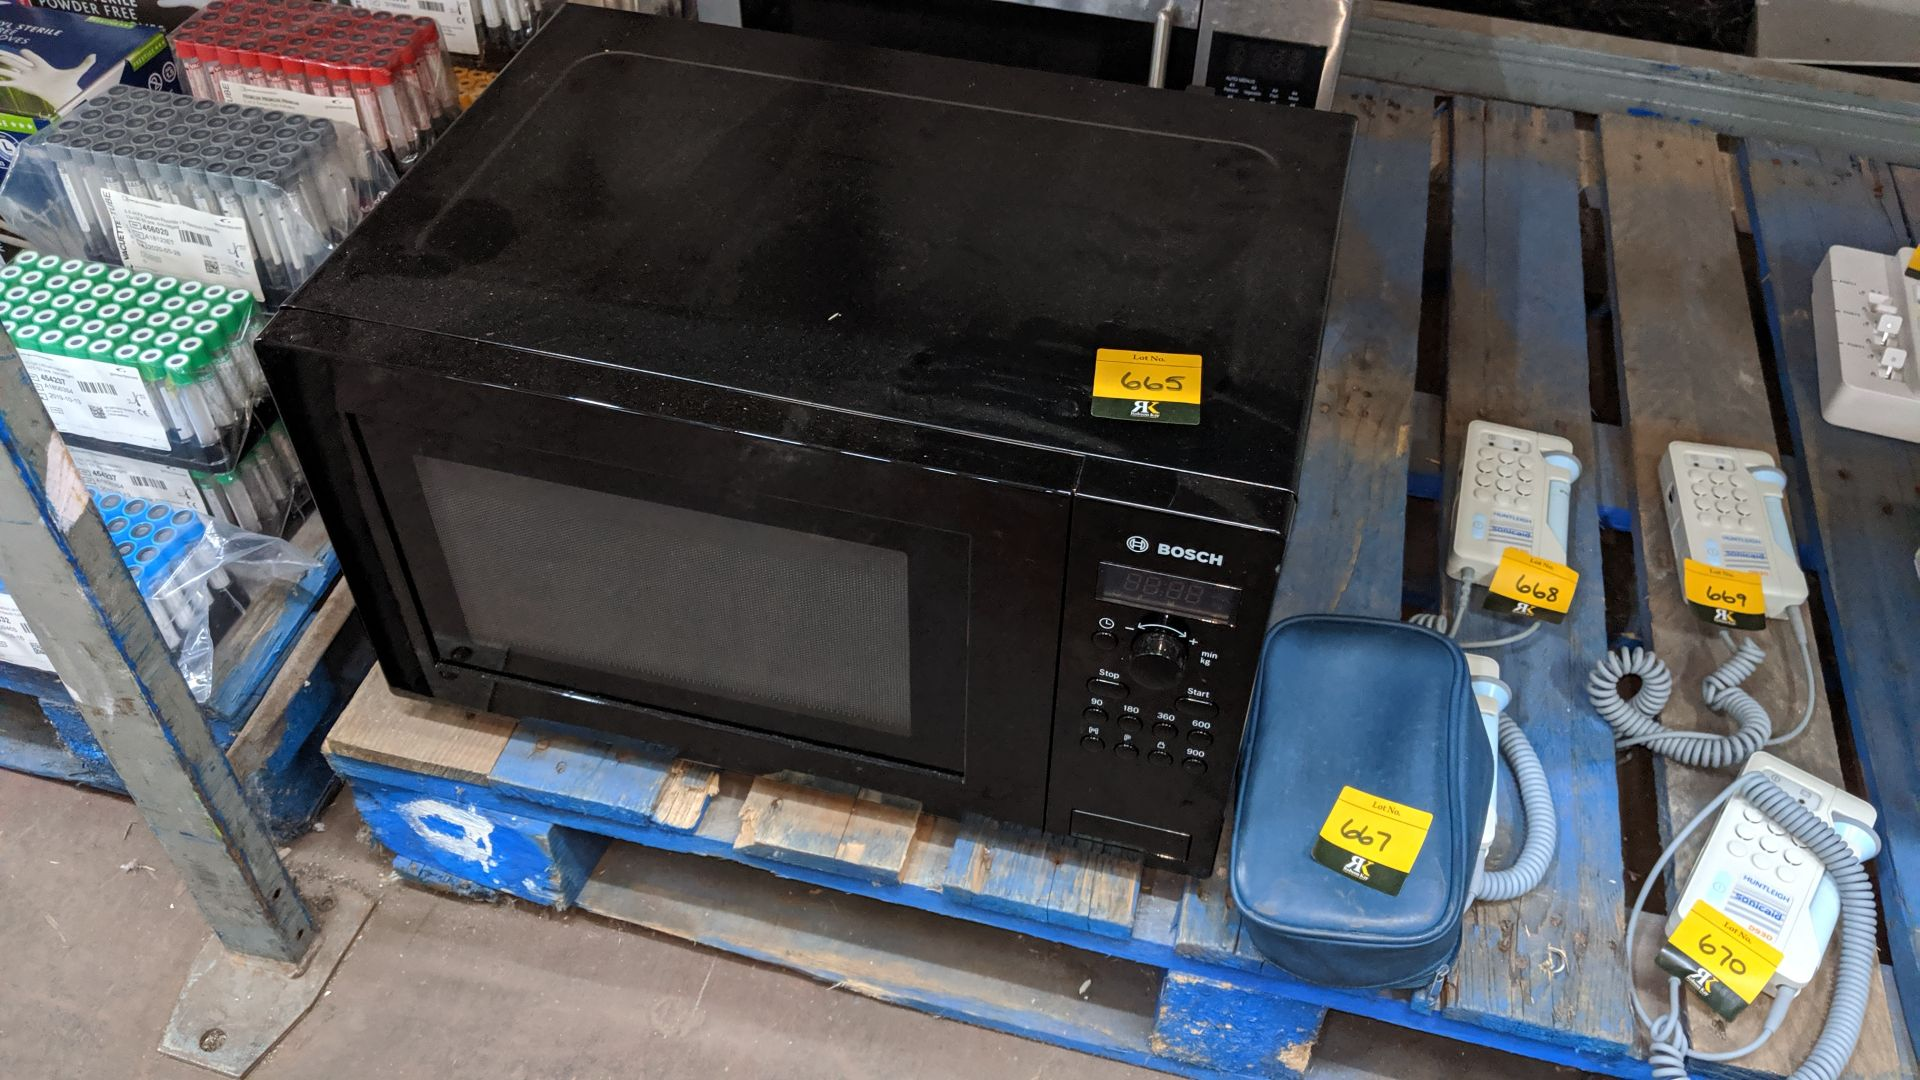 Lot 665 - Bosch microwave. This is one of a large number of lots used/owned by One To One (North West) Group